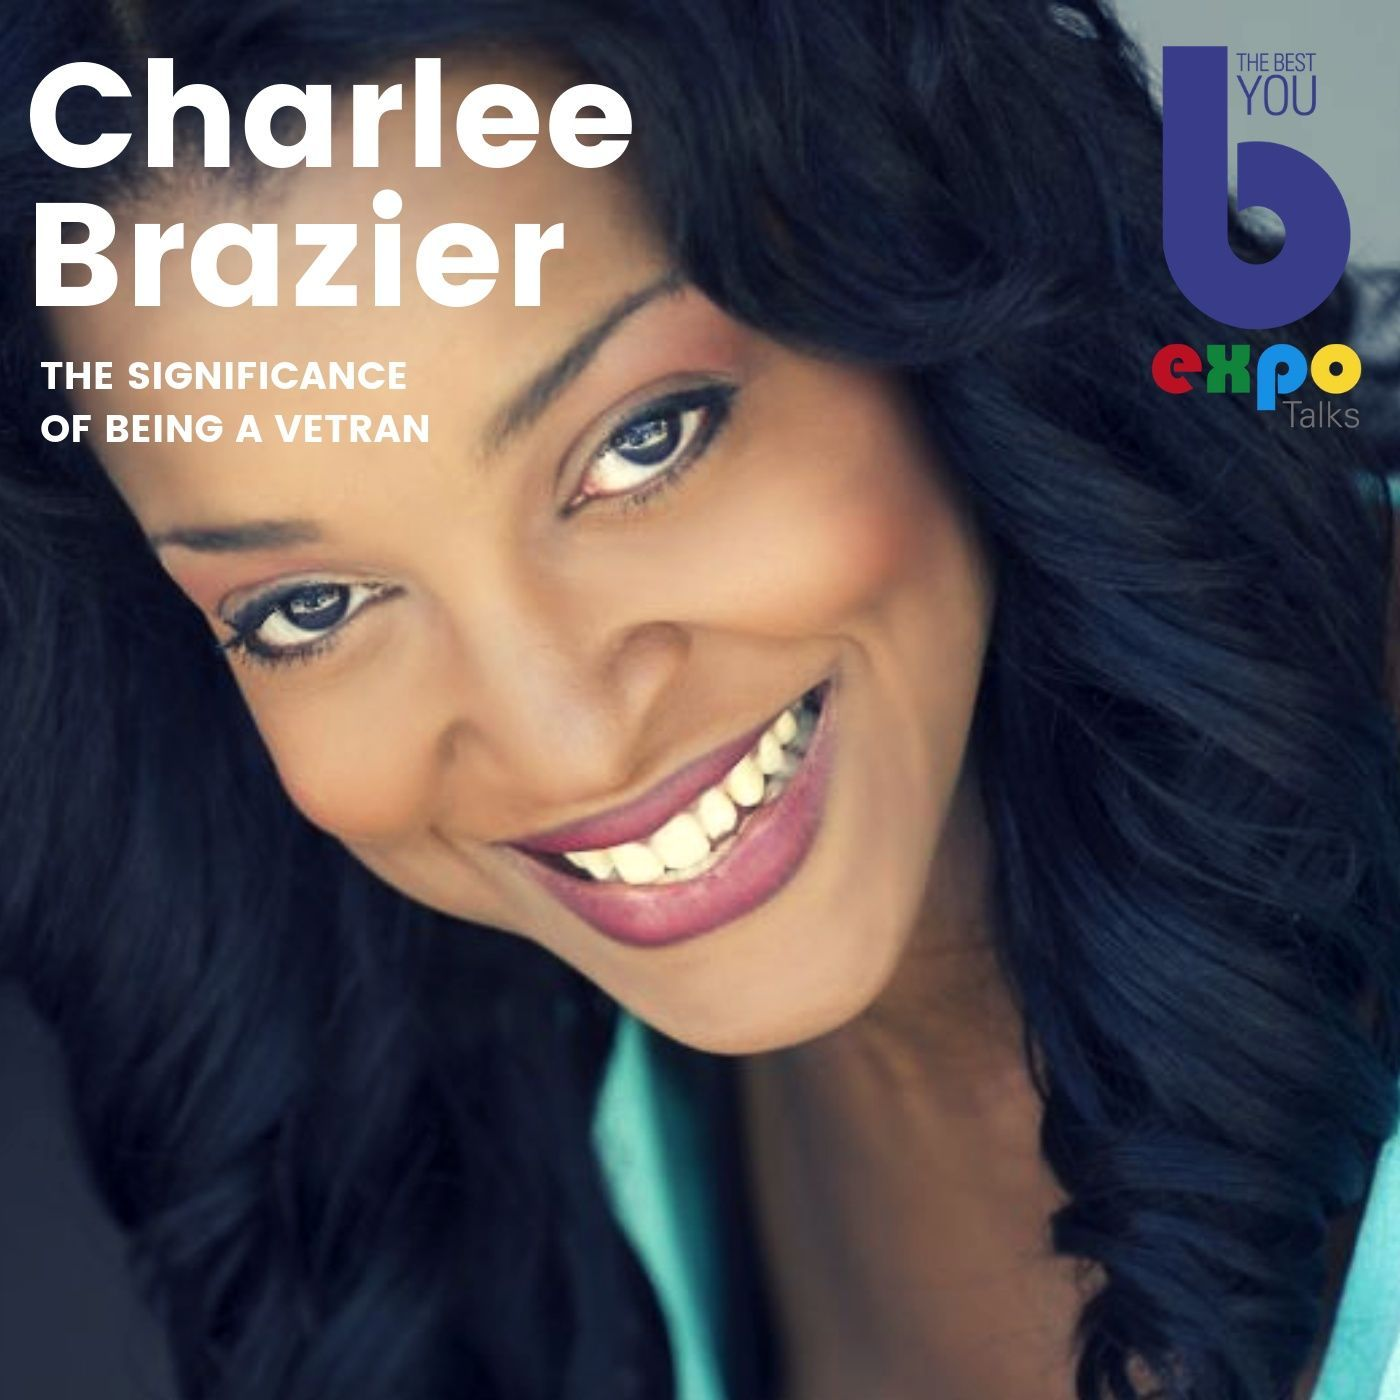 Listen to Charlee Brazier at The Best You EXPO